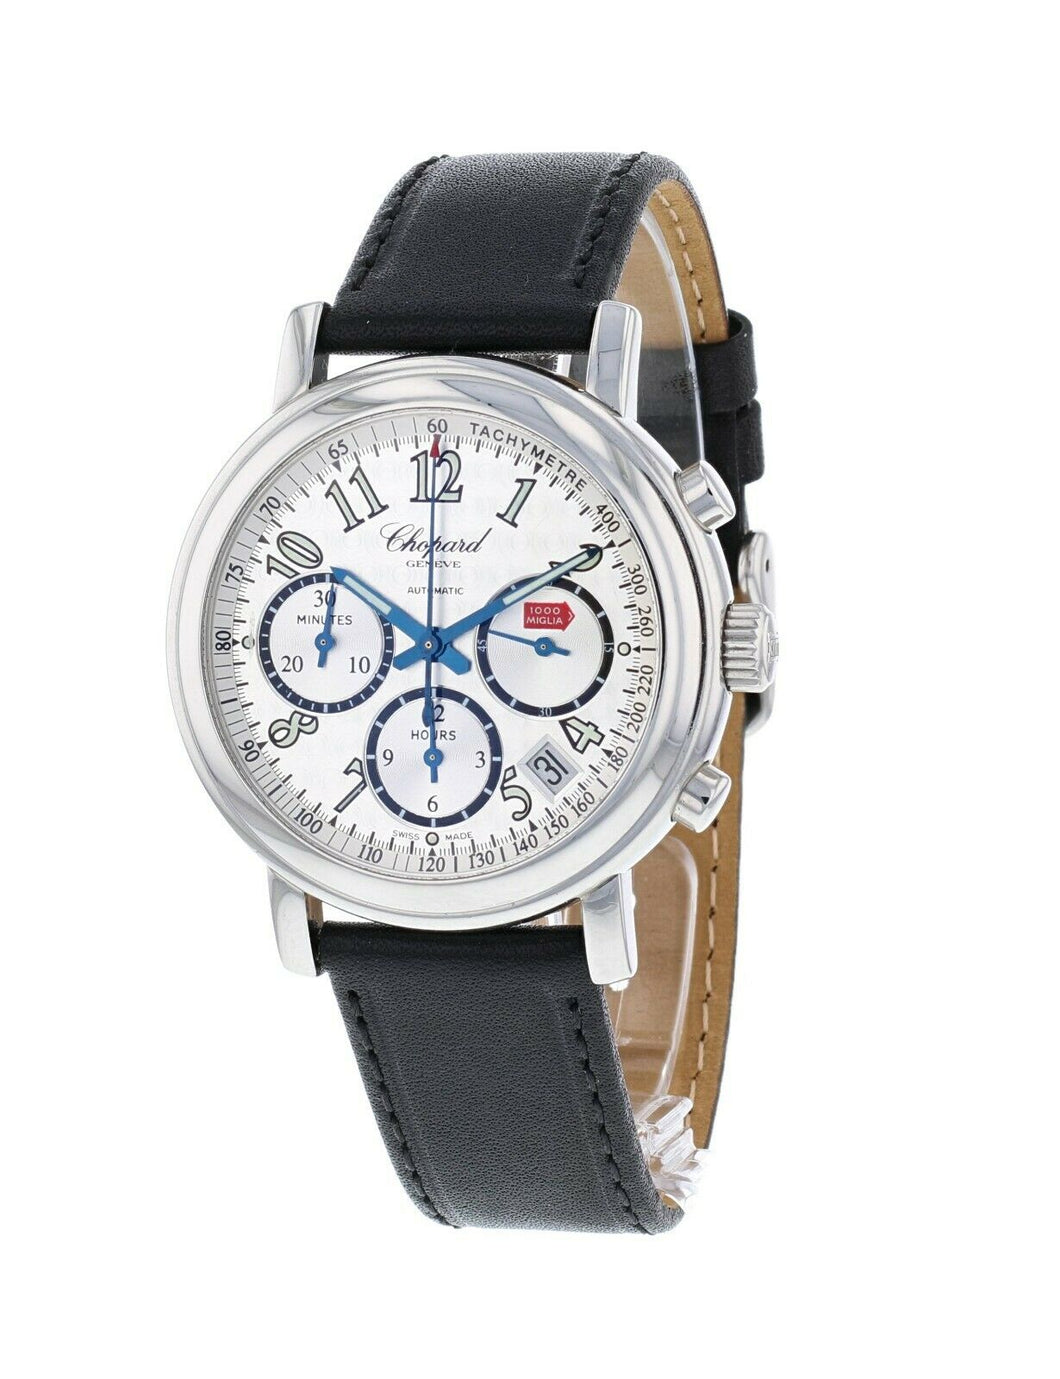 Chopard Mille Miglia Stainless Steel Chronograph Men's 38.5mm Watch 15/8331-99